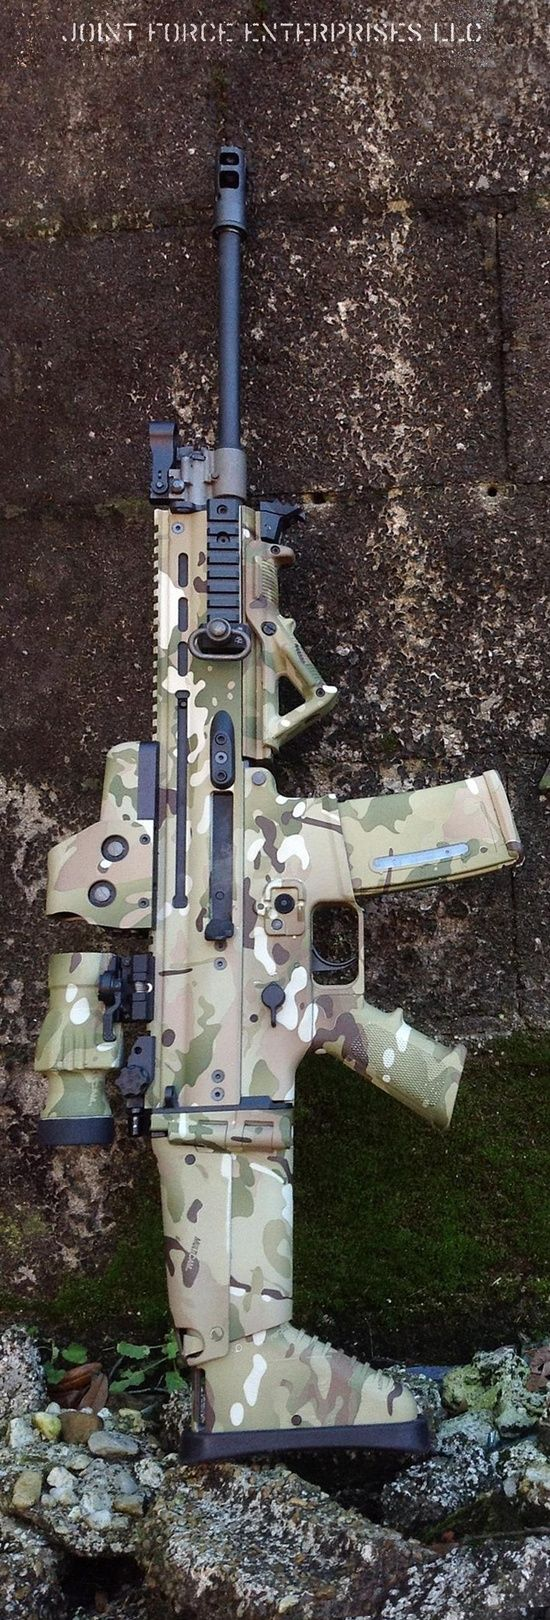 We'd love to add this camouflaged SCAR to our collection! Who'd be adventurous enough to give this a go? #MachineGunAmerica